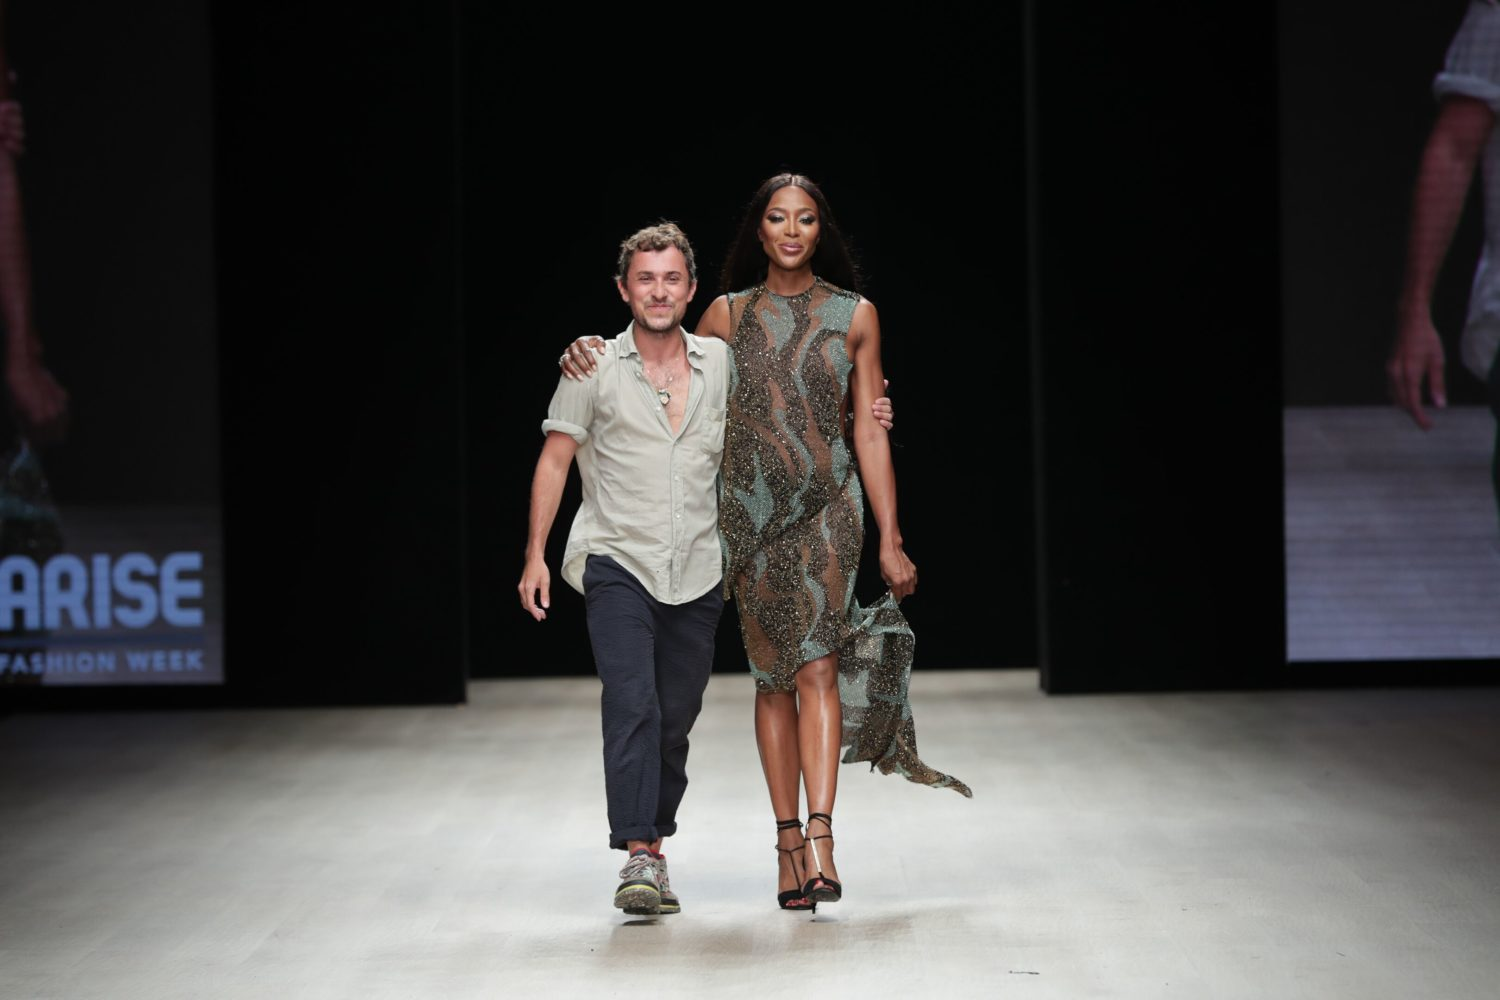 ARISE Fashion Week 2019 | Esteban Cortazar